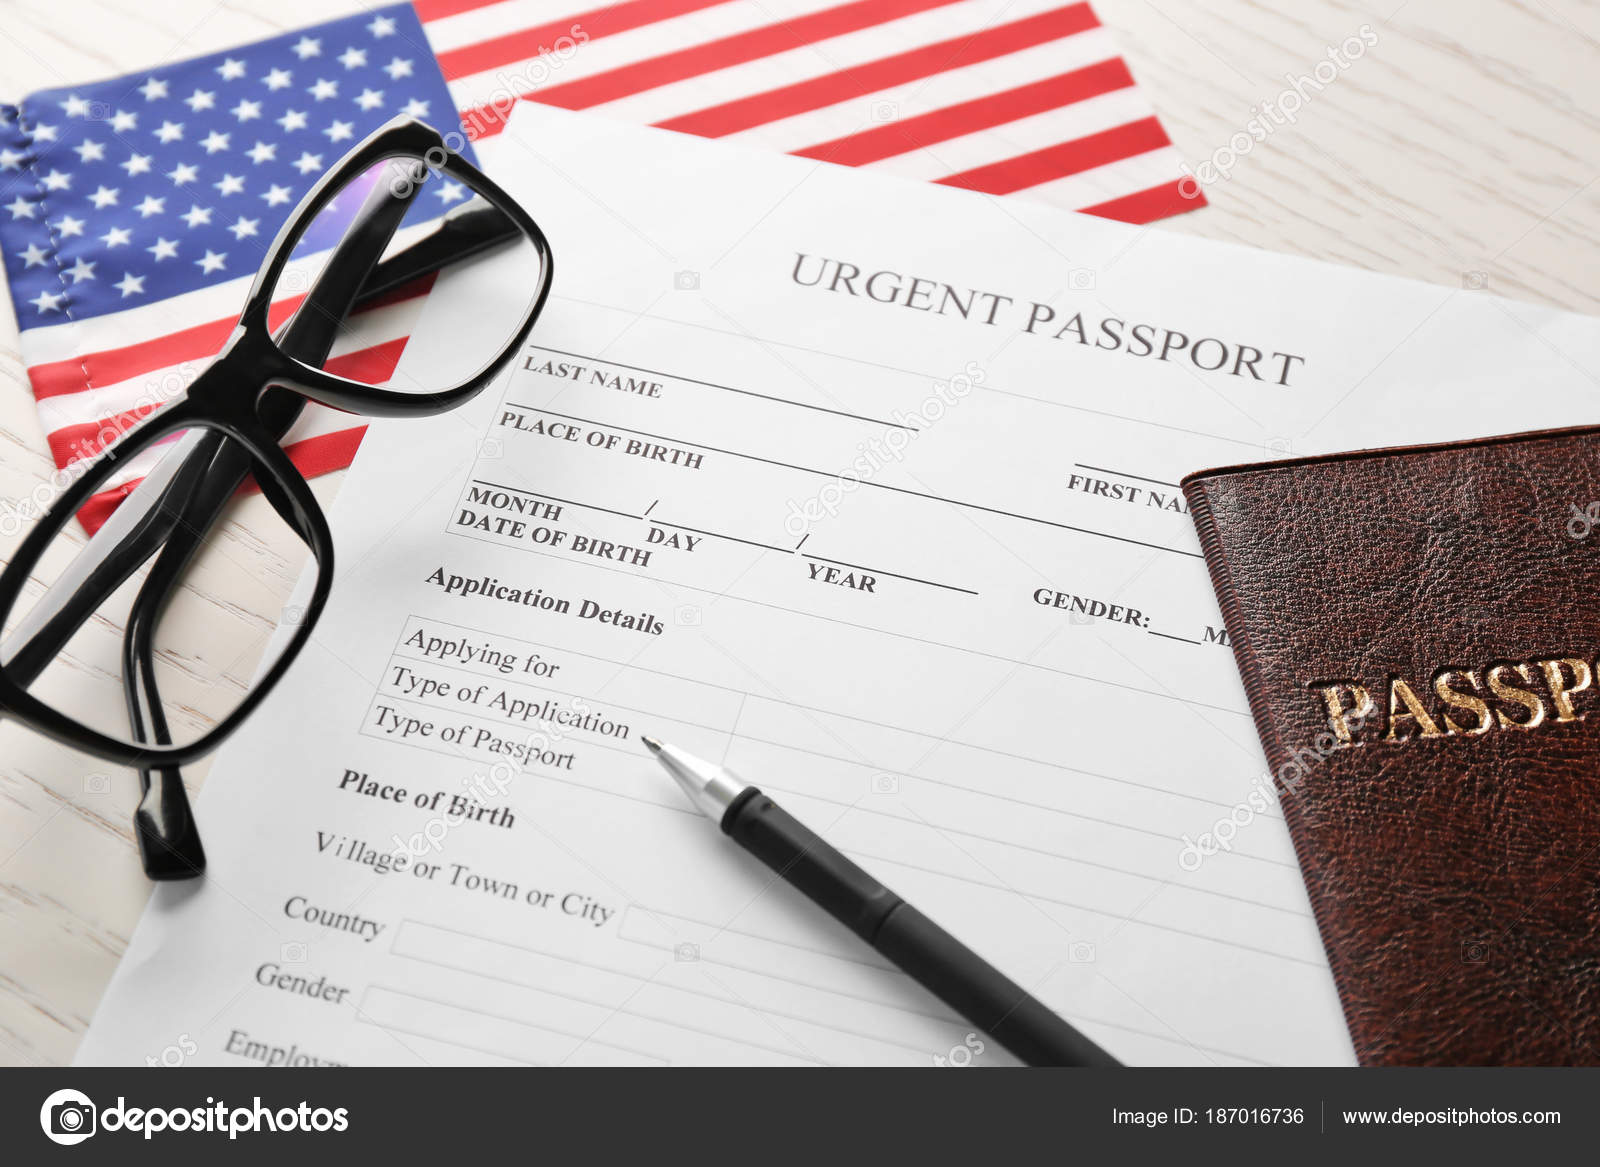 Passport Application Form And American Flag On Table Immigration